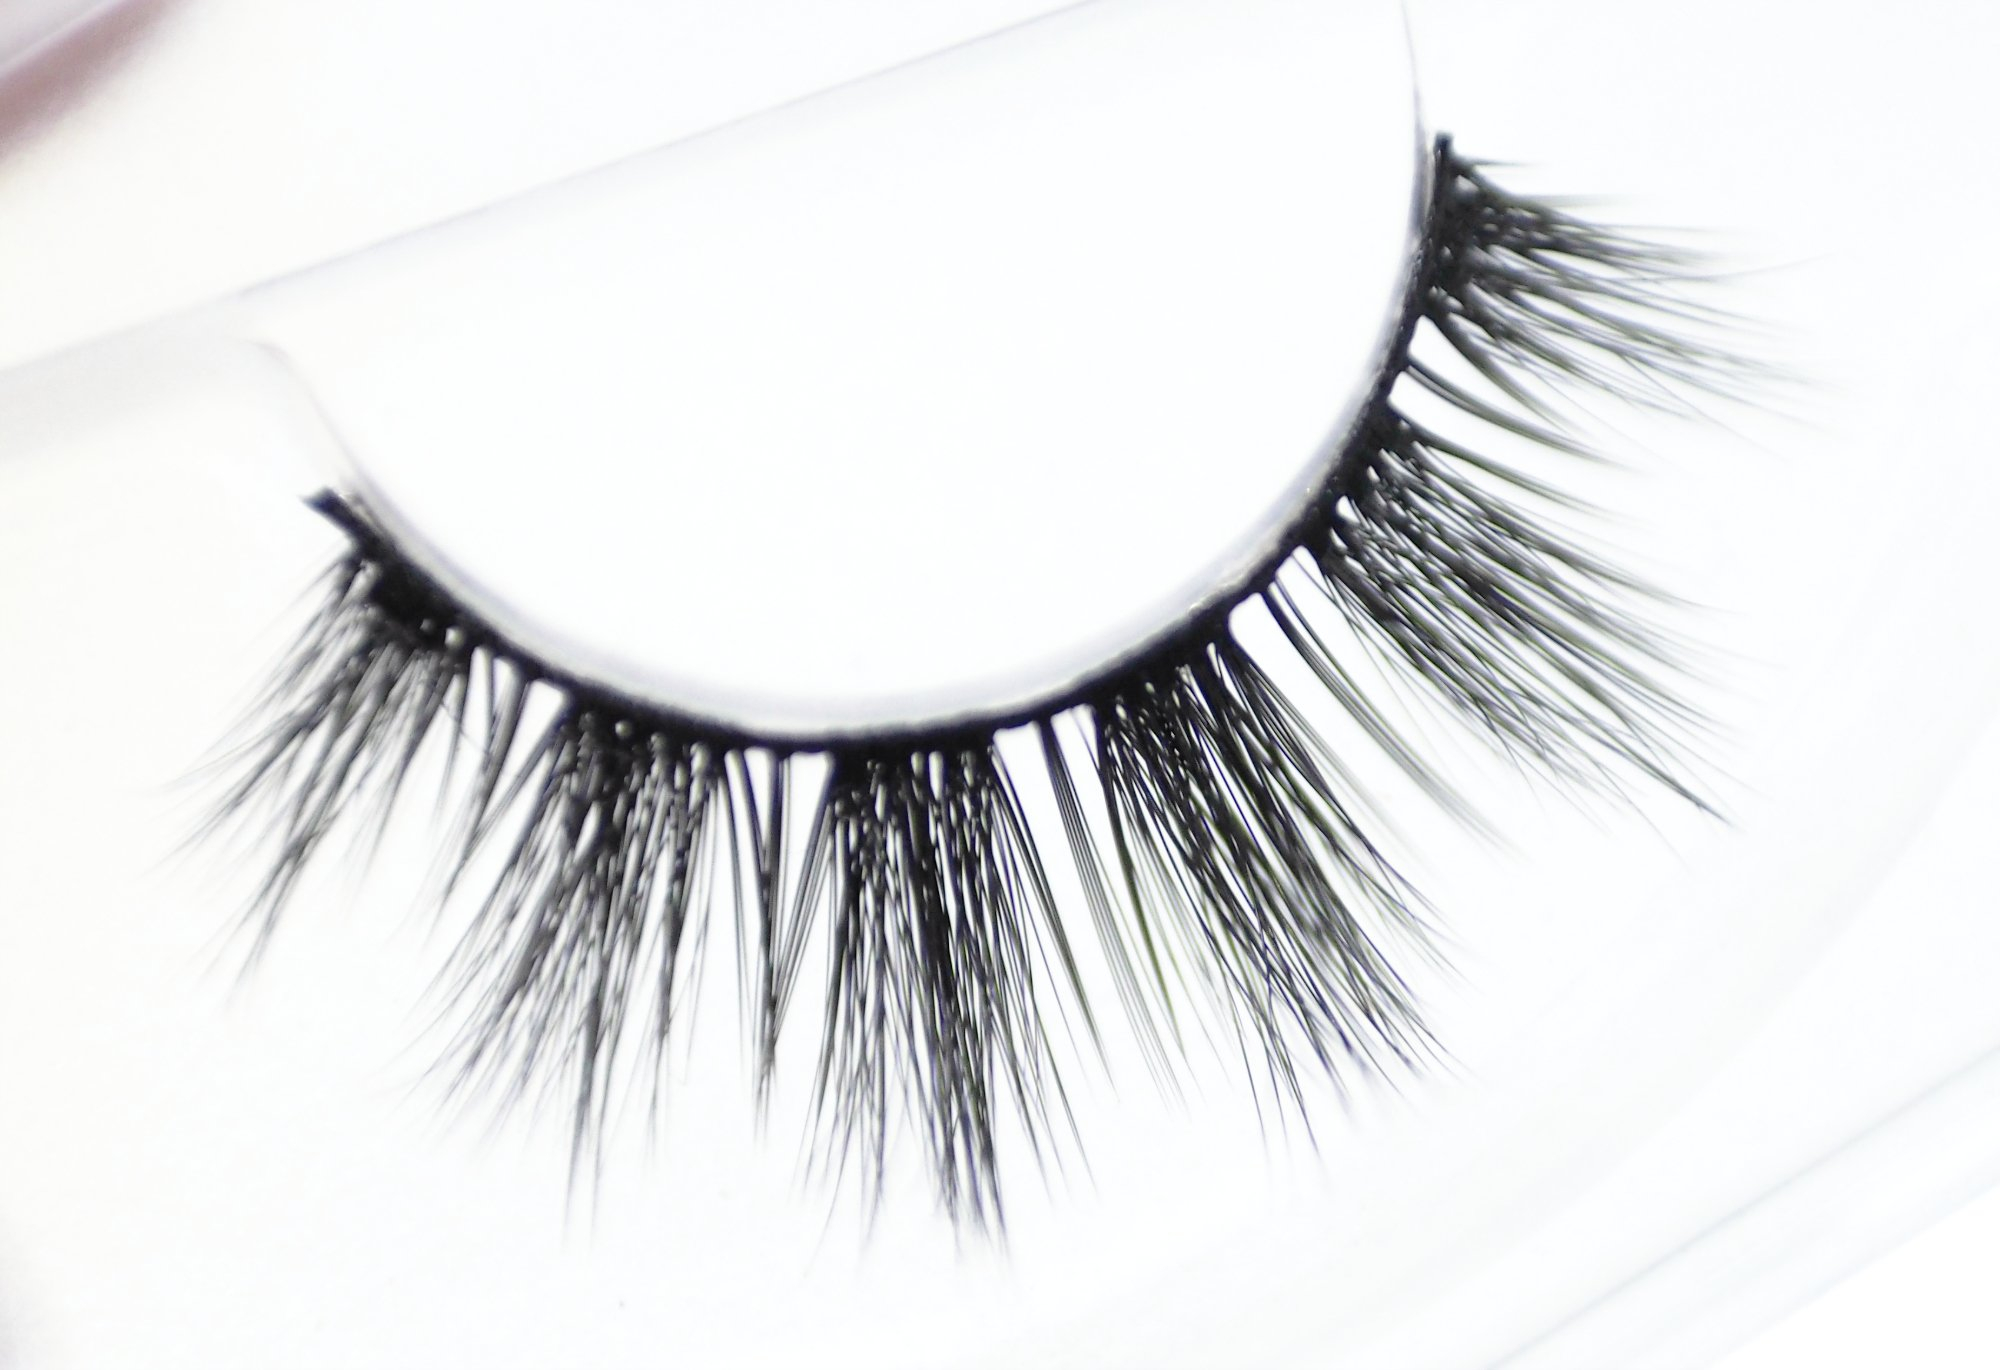 Review of the Unicorn Cosmetics Lashes in the styles Bubble Pop and Clementine